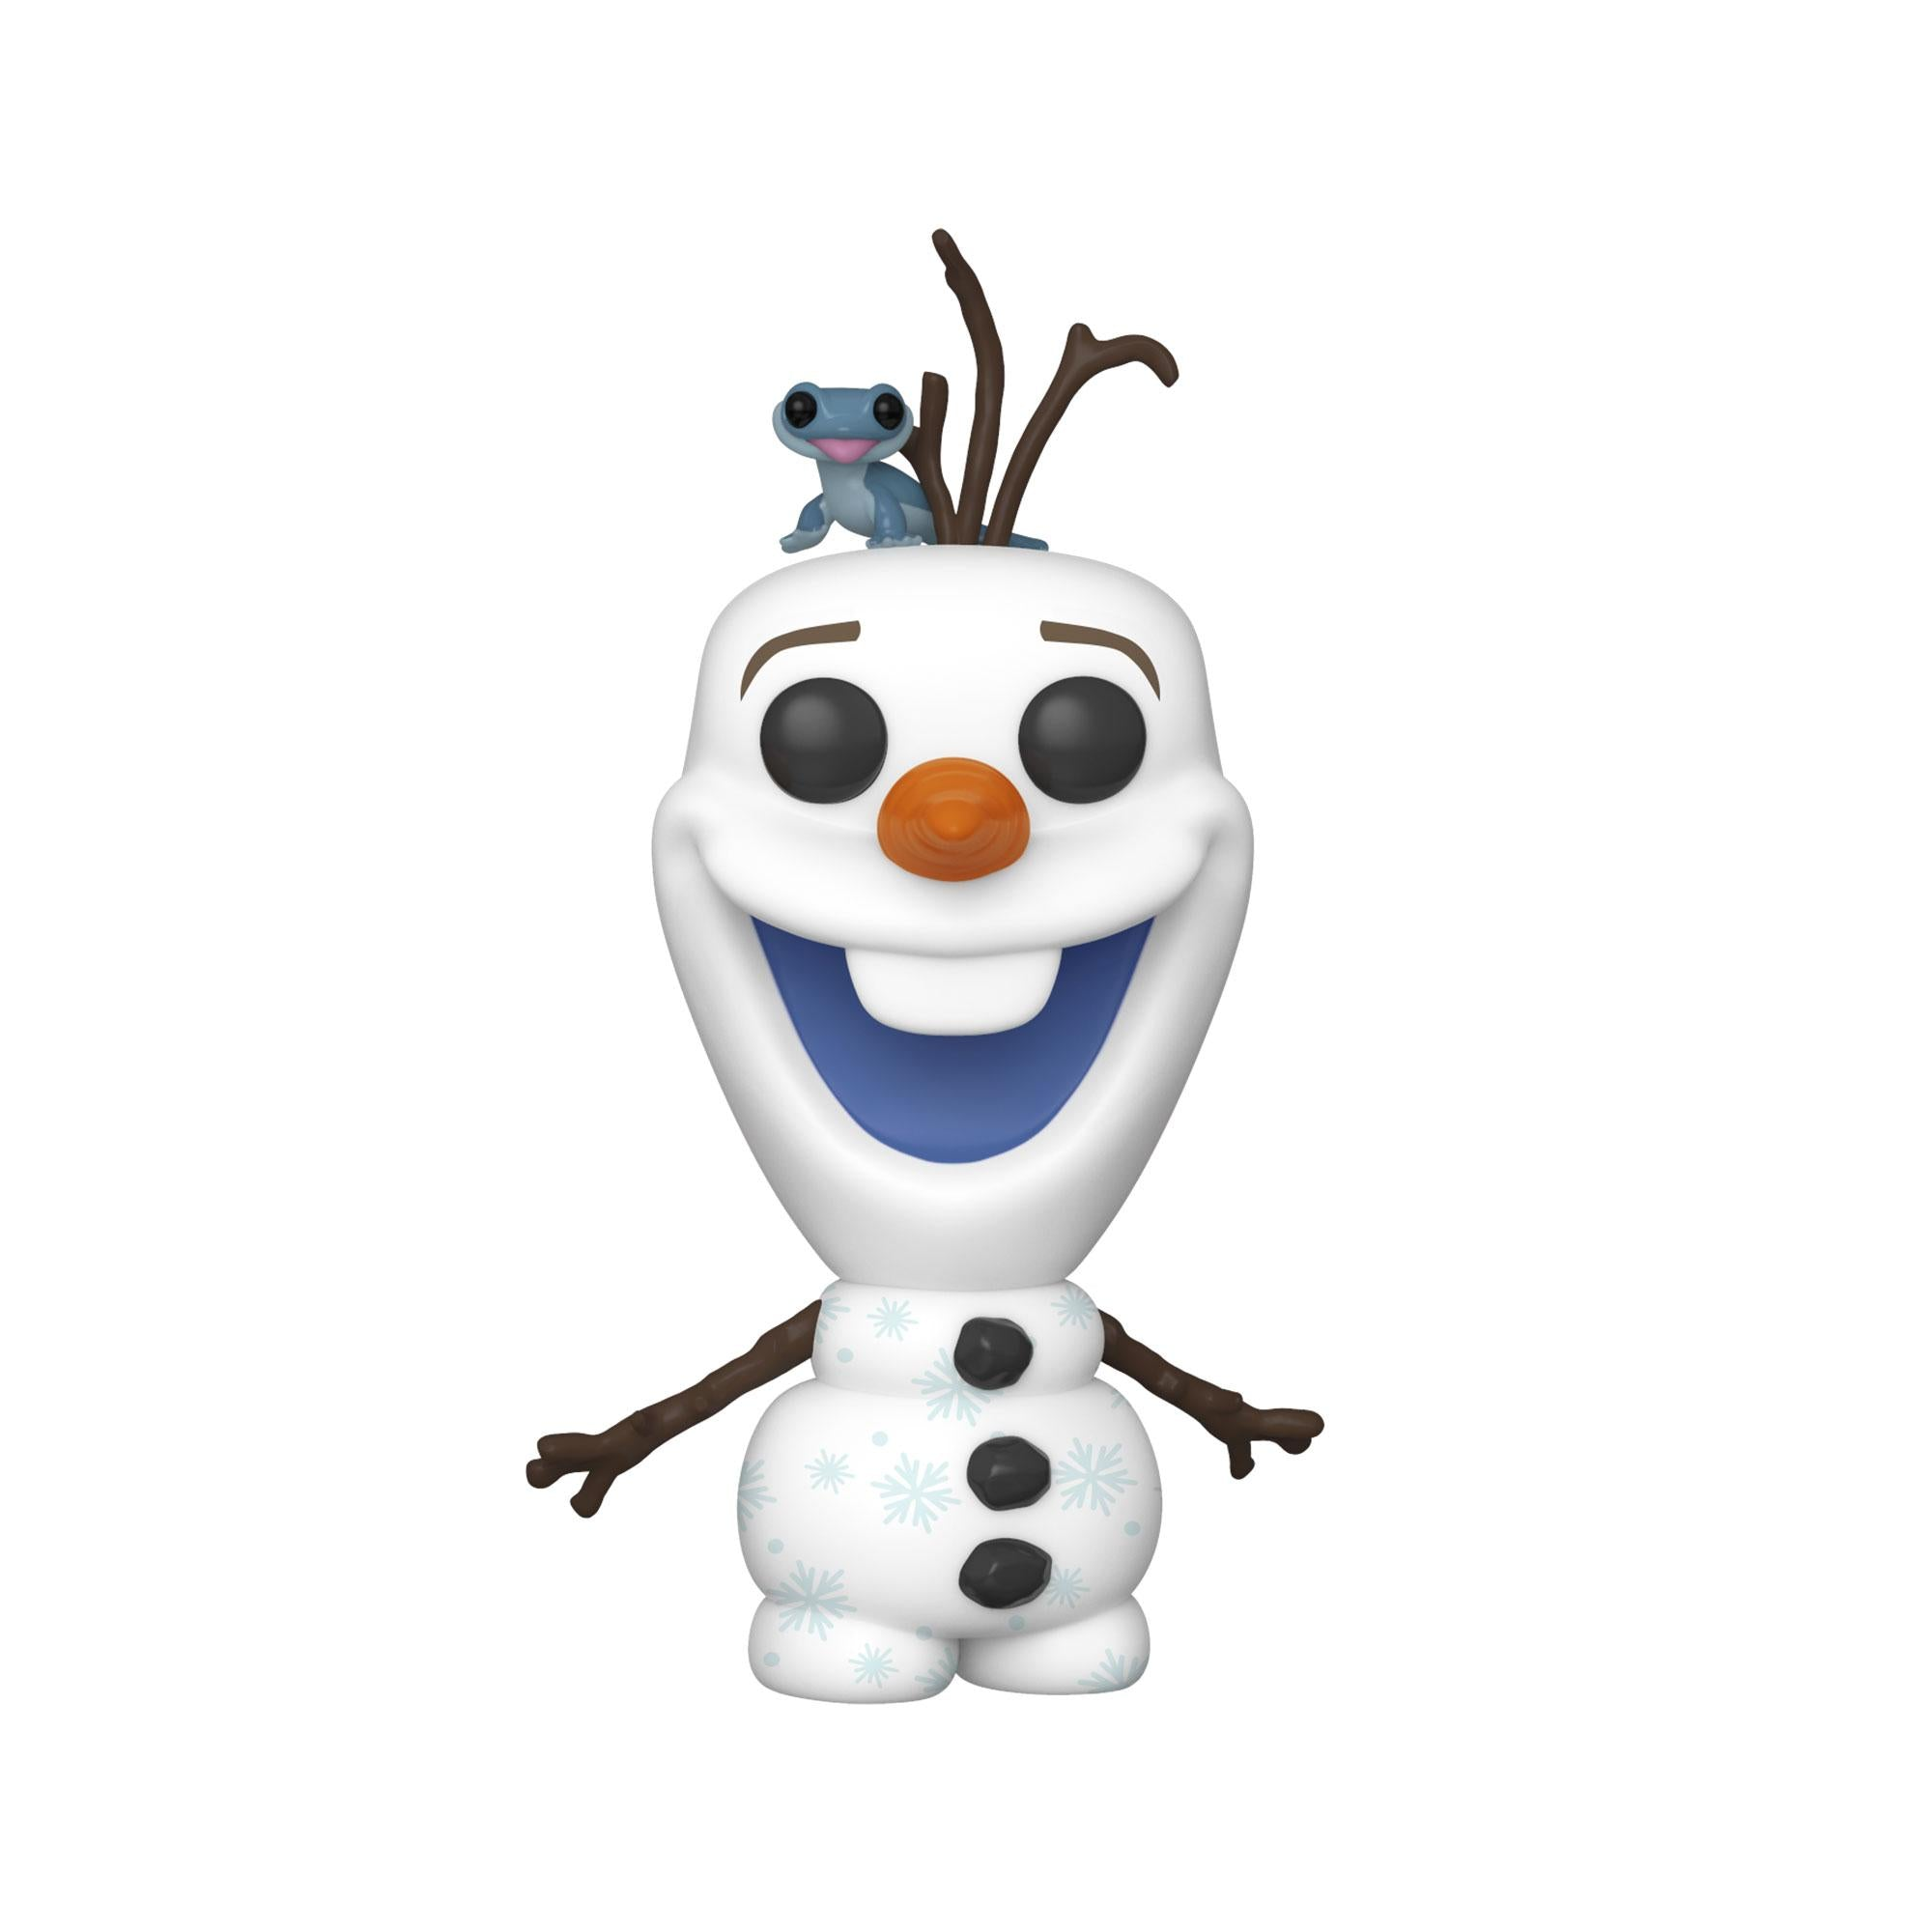 Frozen 2 Olaf and Fire Salamander